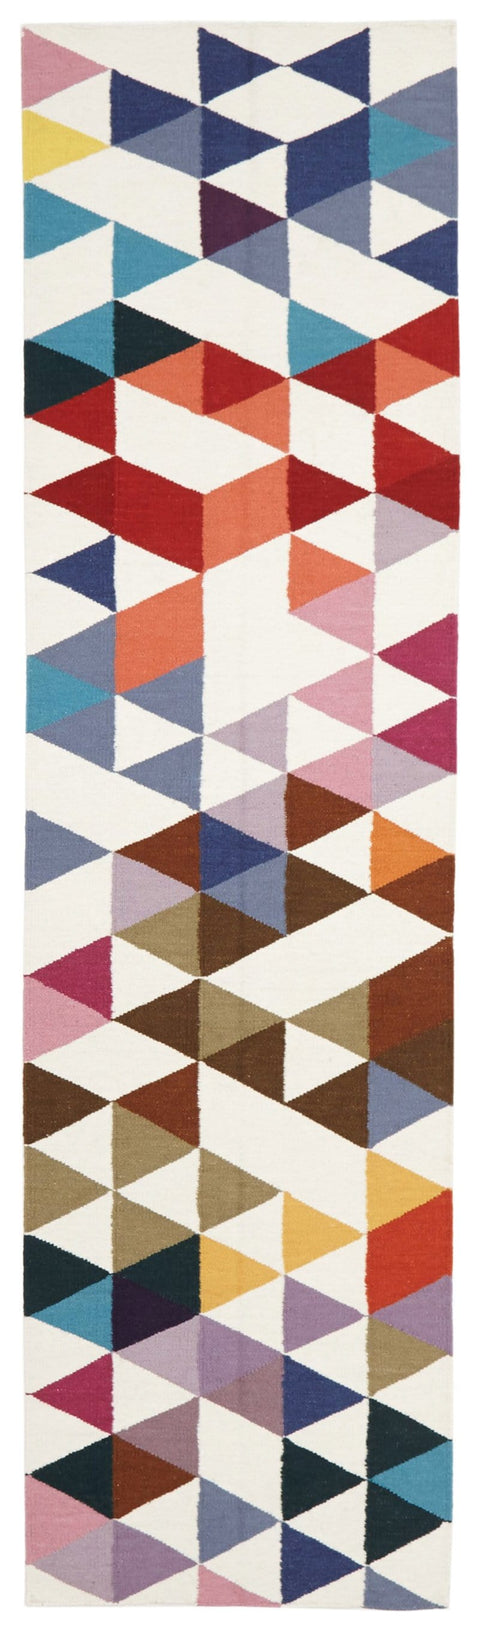 Ålesund Multi-Colour Mosaic Wool Runner Rug